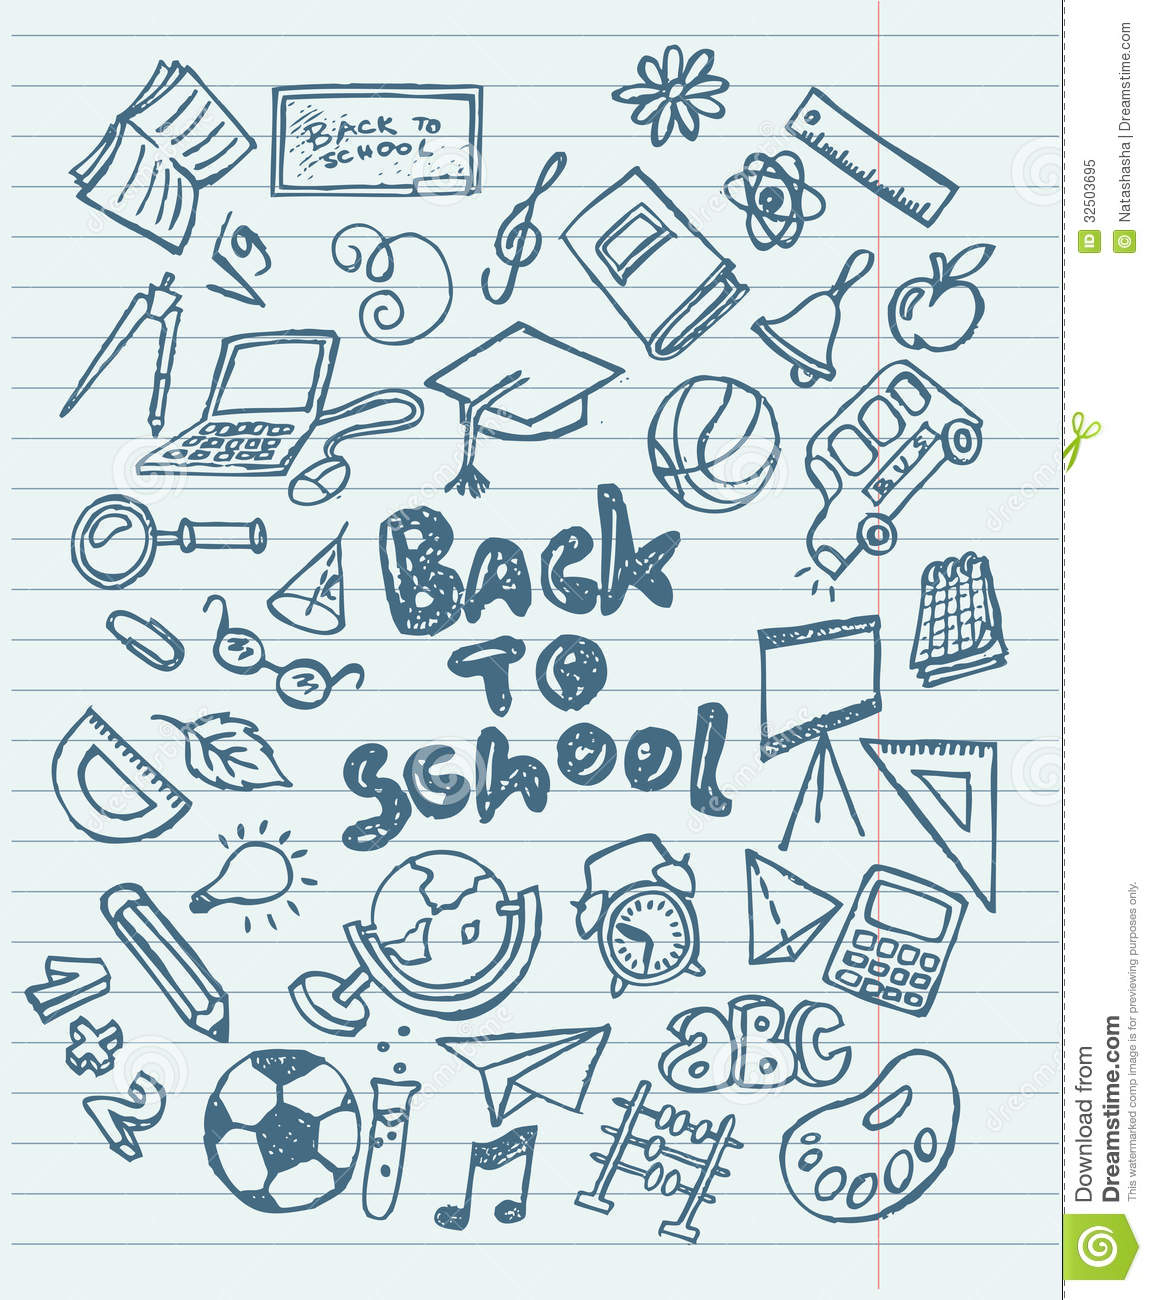 Back To School Sketchy Doodles Stock Vector Image 32503695